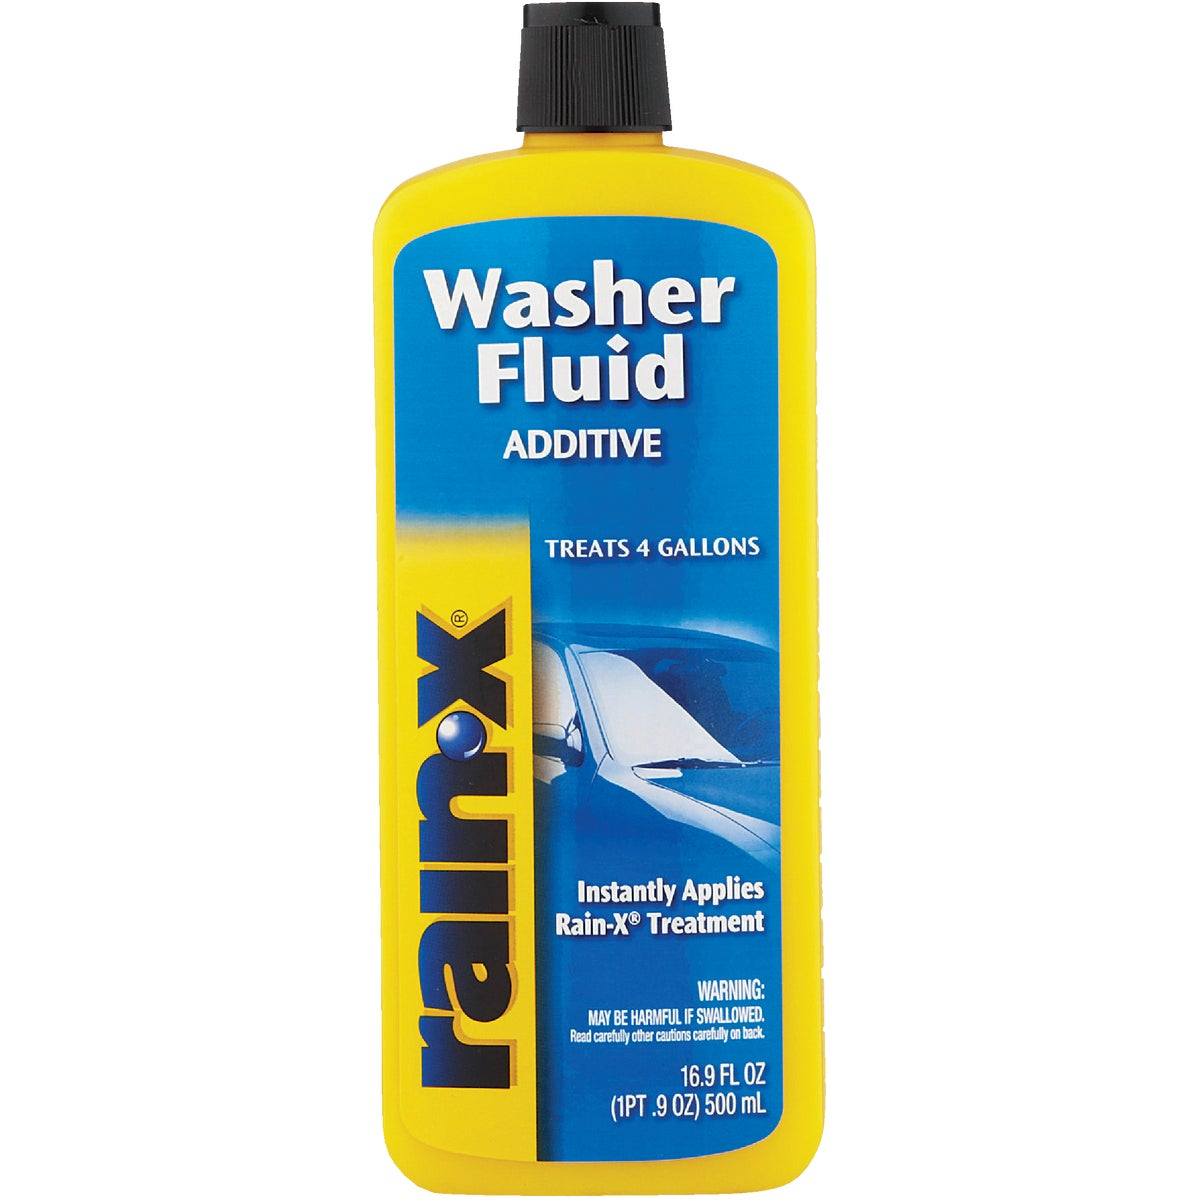 RAIN-X WASH ADDITIVE - RX11806D by Itw Global Brands